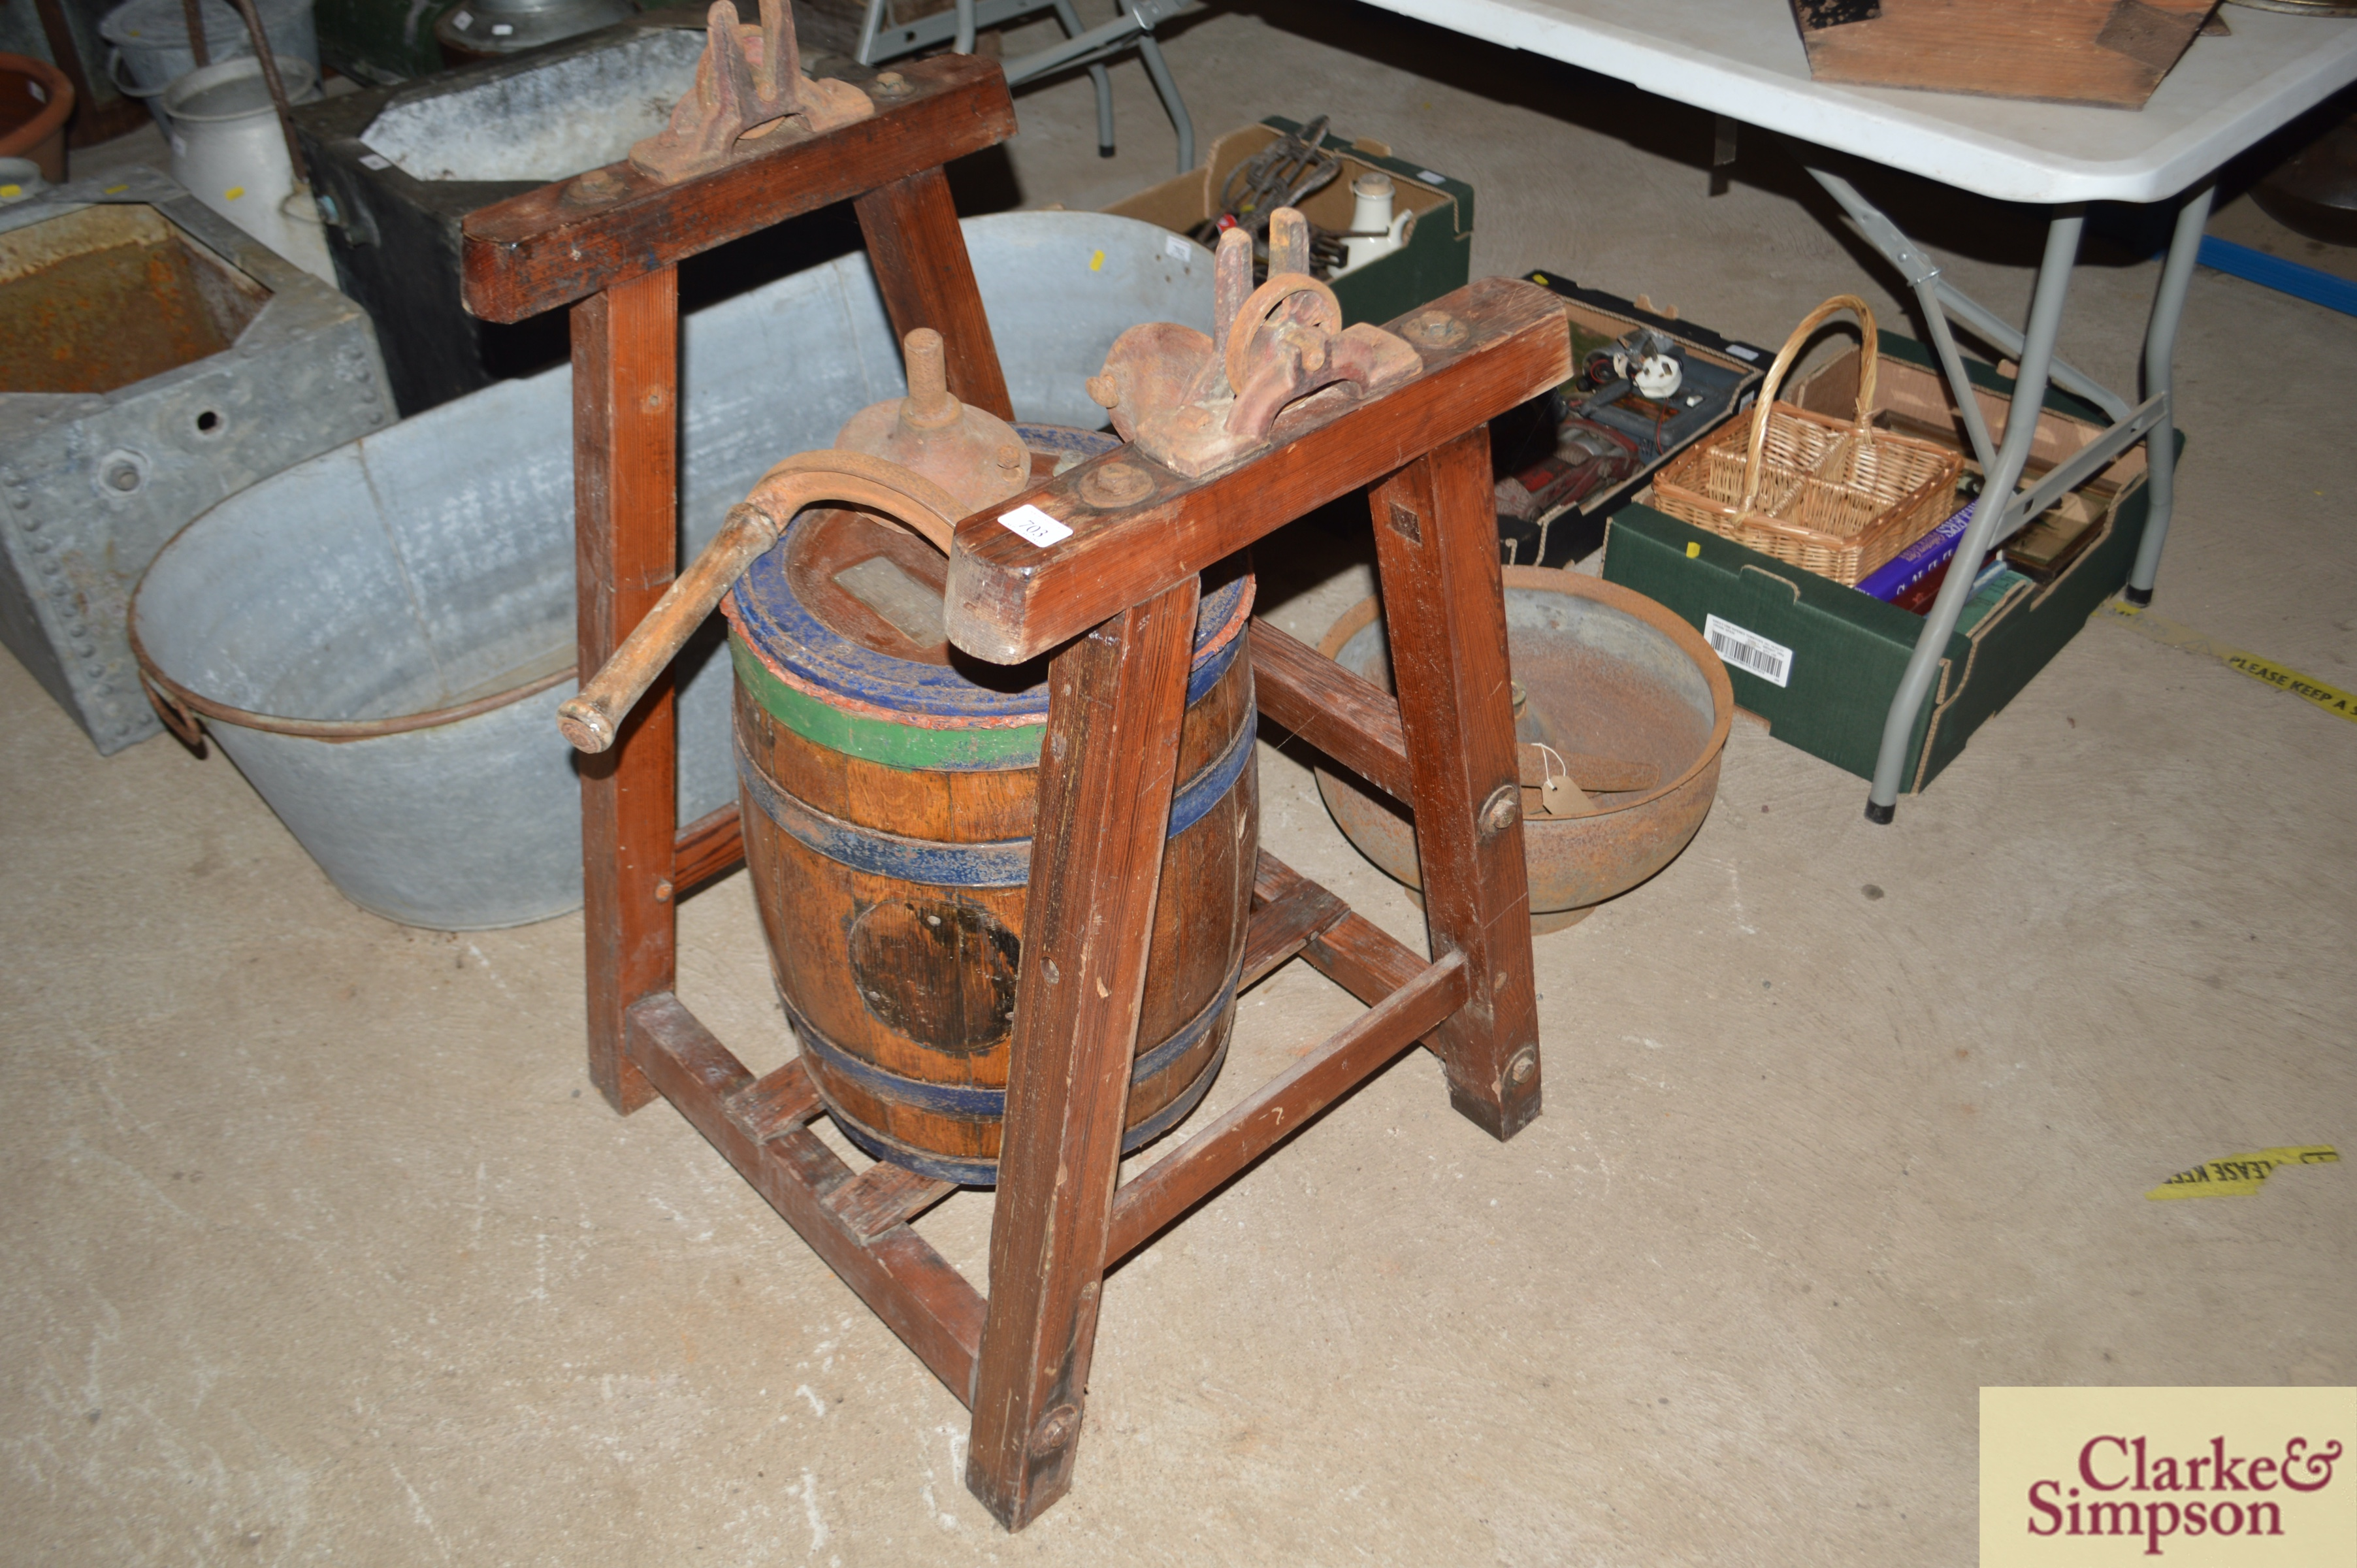 An old butter churn with stand and cream separator